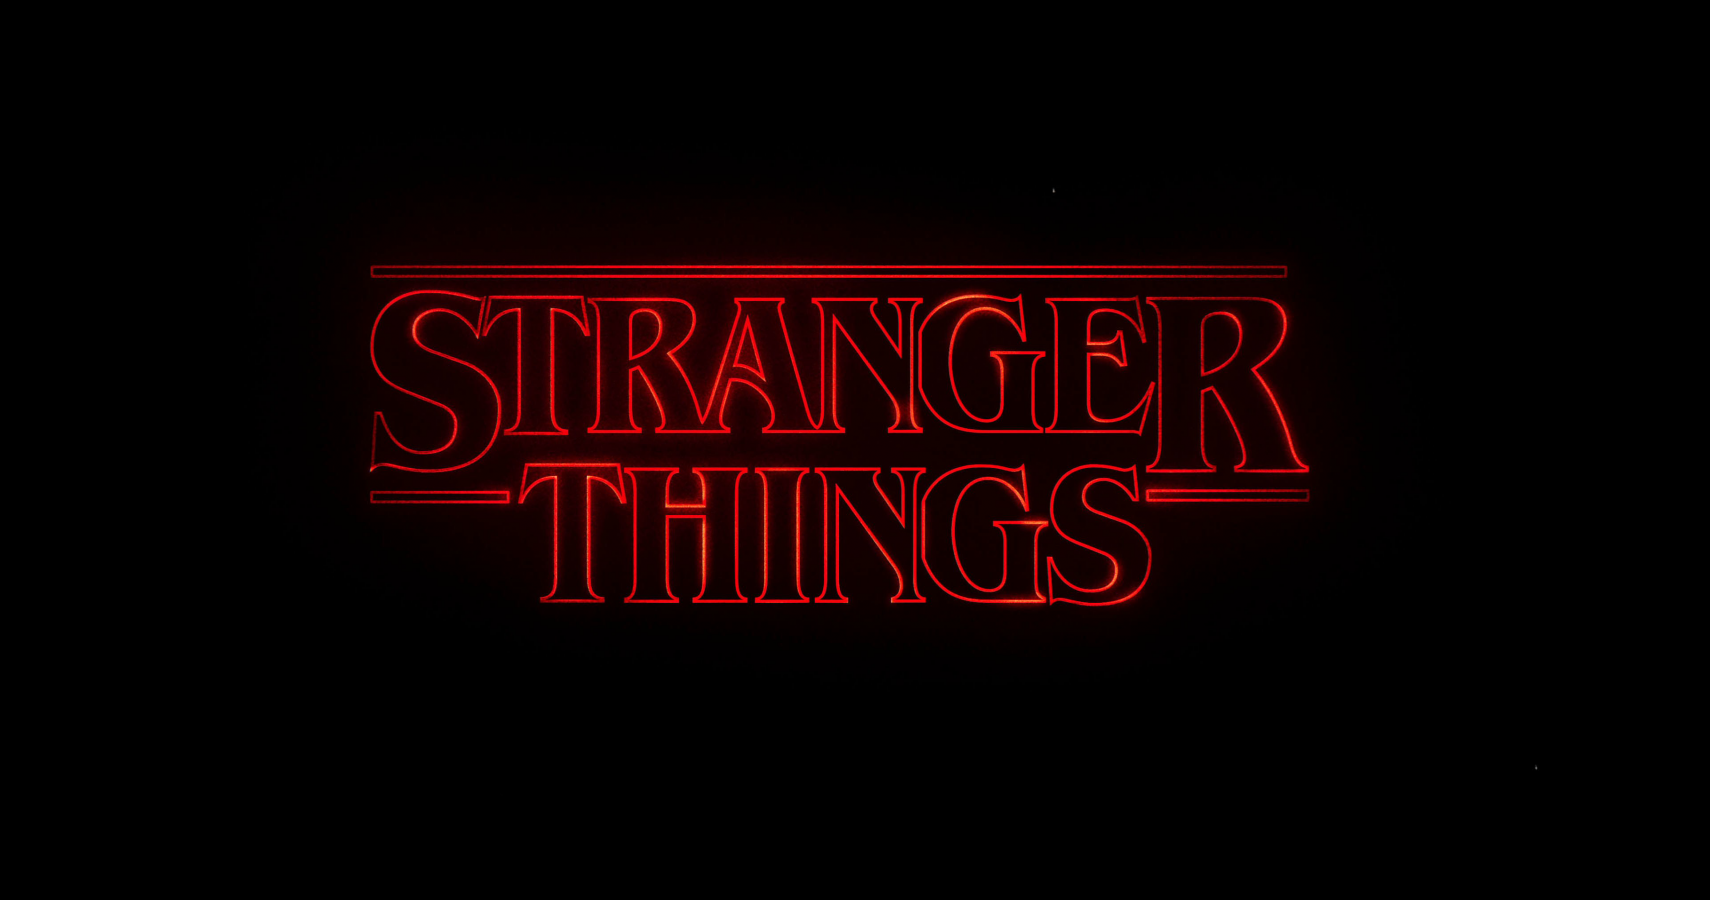 Watch Chris Perkins DM The Stranger Things Cast This Friday